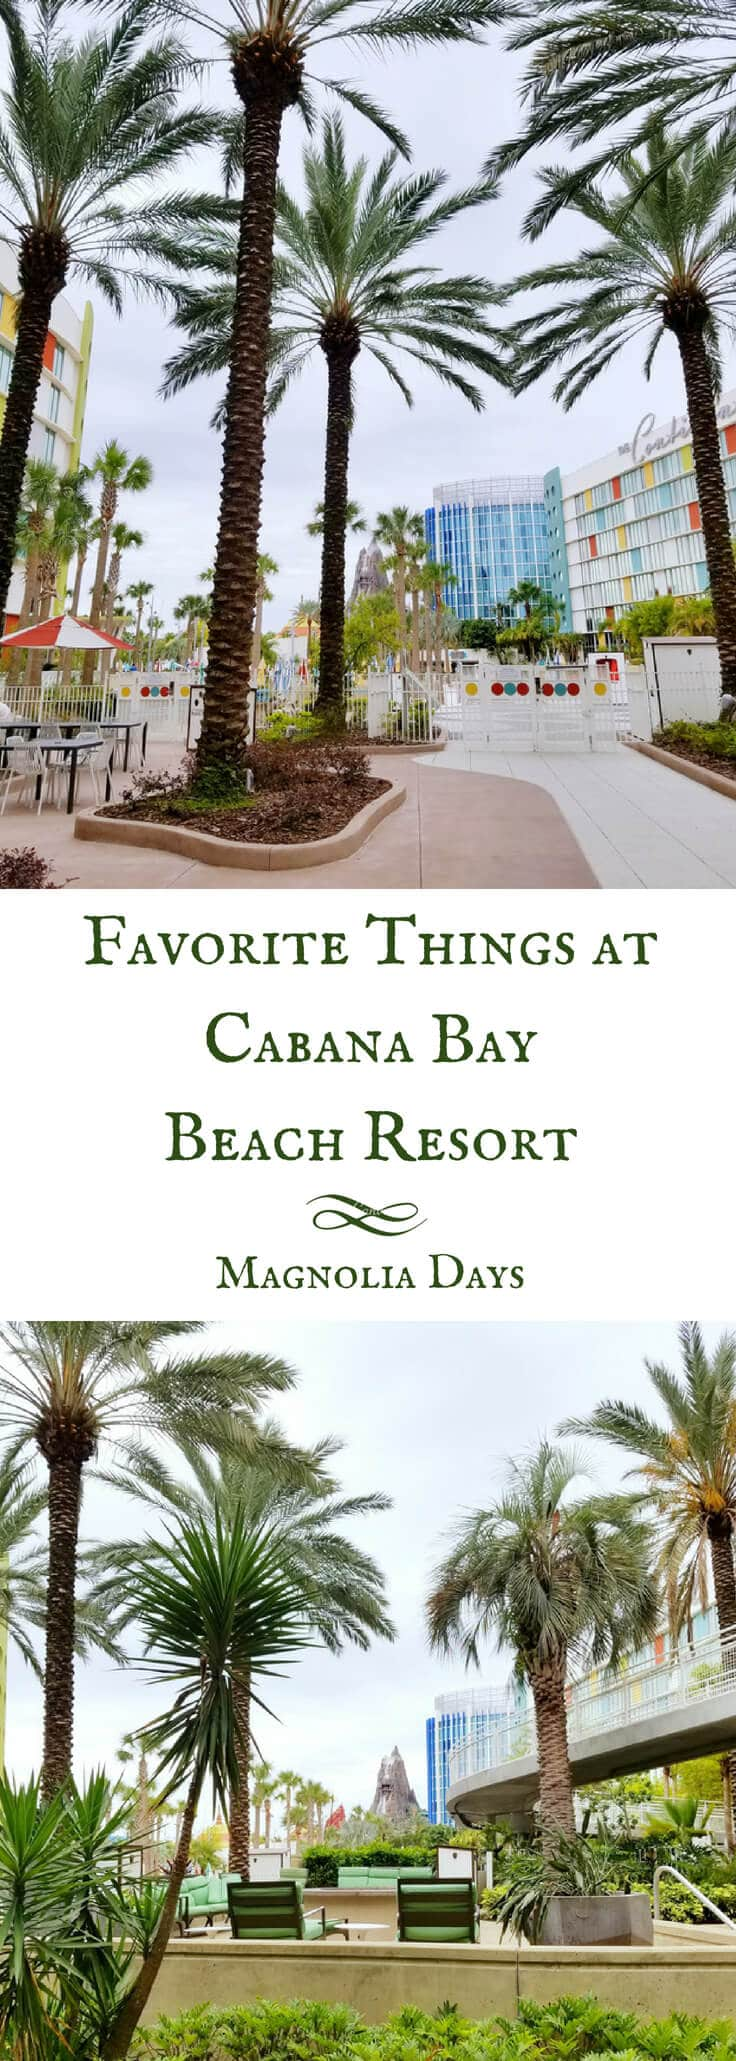 We stayed at Universal's Cabana Bay Beach Resort, and it became one of my all-time favorite hotel stays.  Find out the top 10 reasons why I loved this fabulous retro-themed resort.